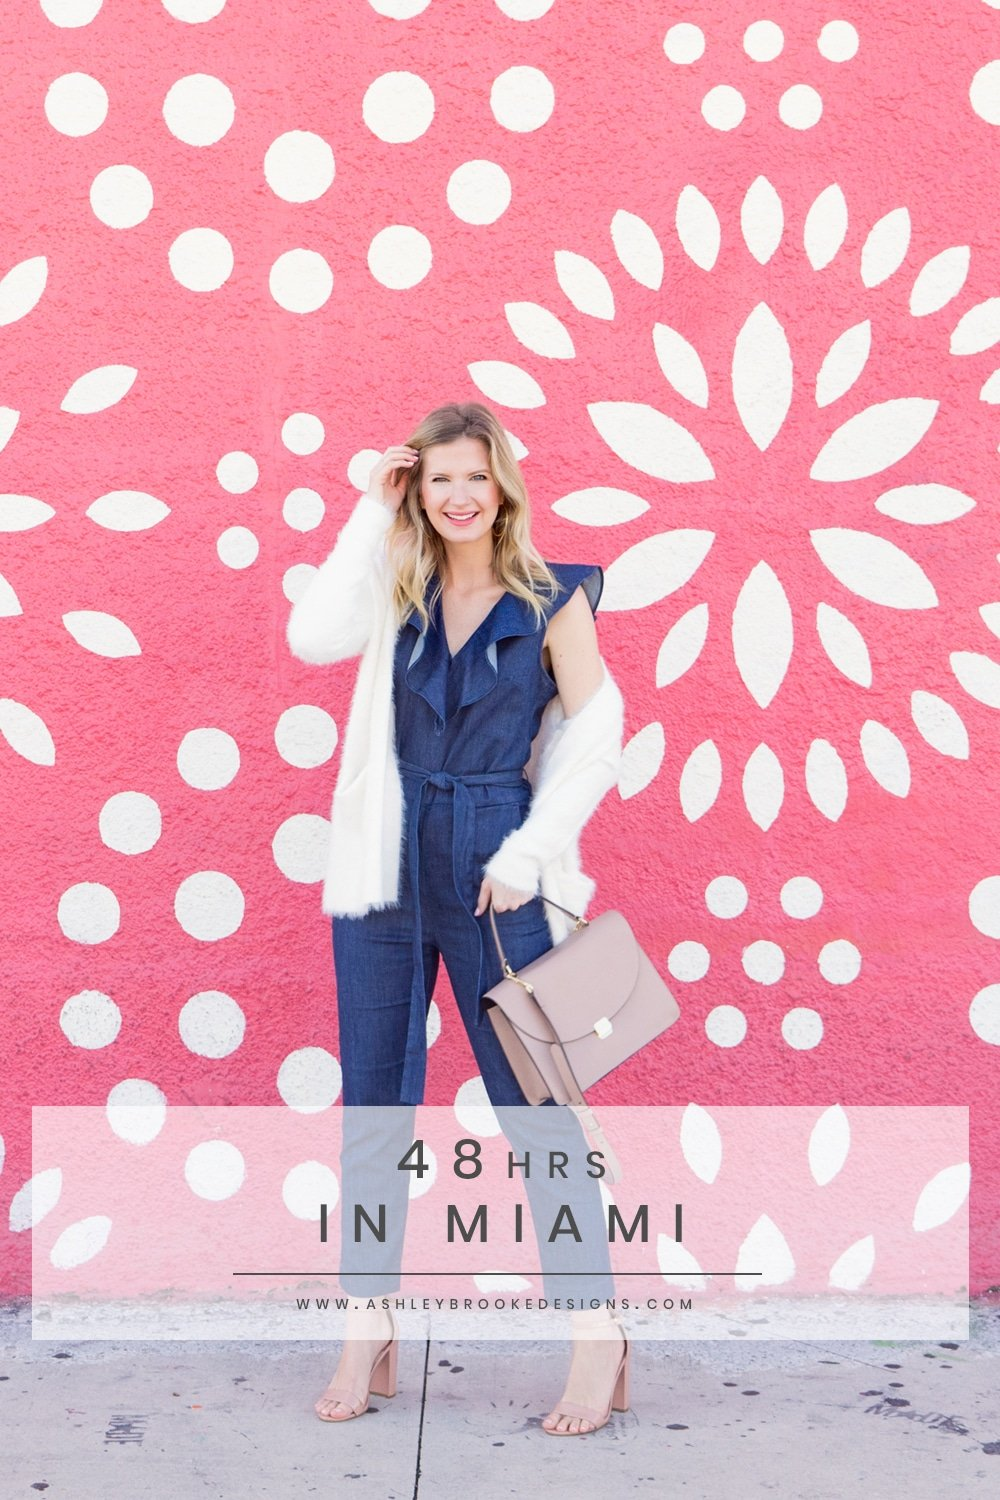 Blogger Ashley Brooke does 48hrs in Miami | www.ashleybrookedesigns.com